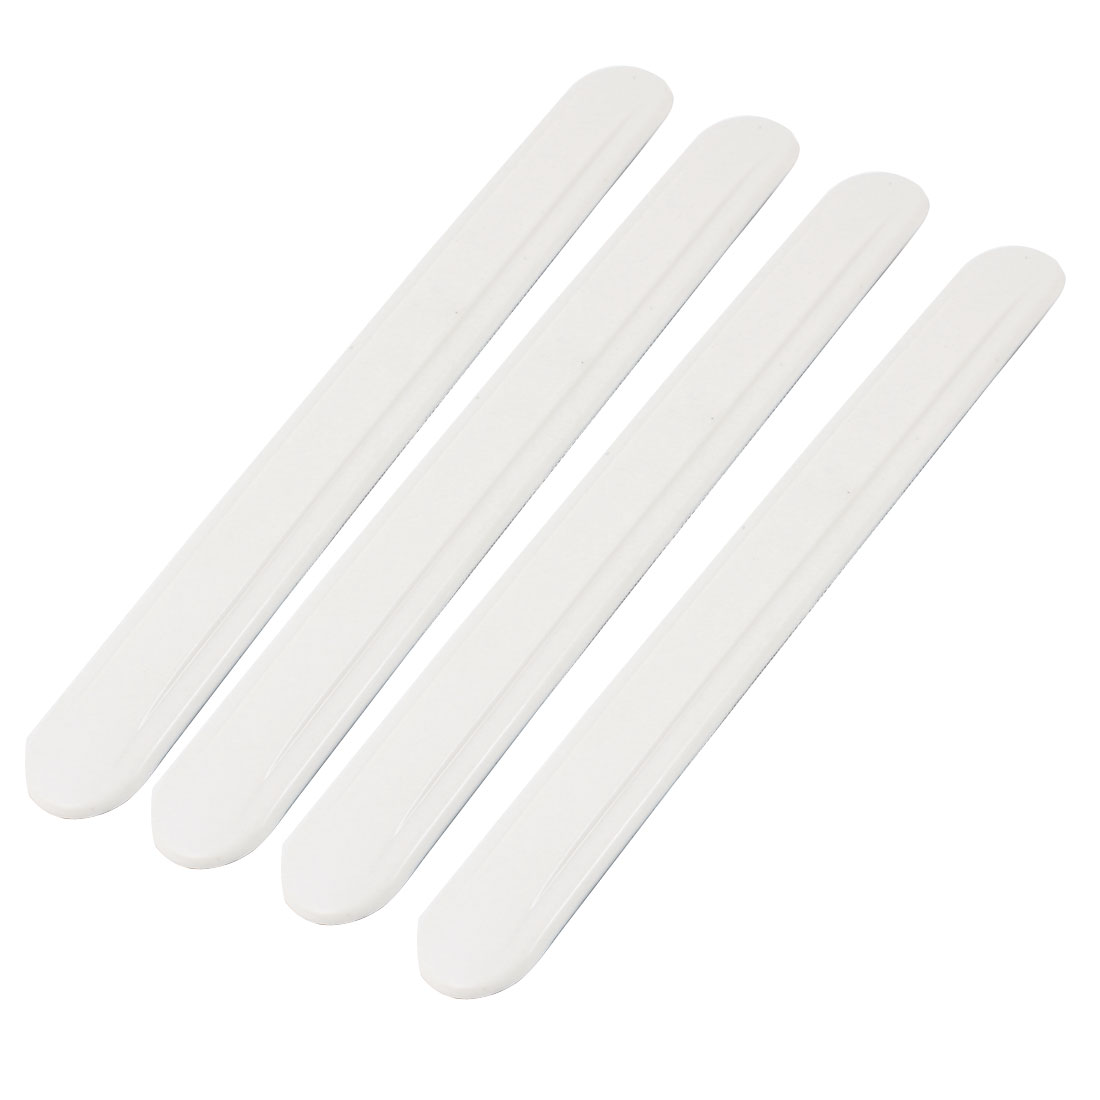 White Soft Plastic Car Body Door Bumper Shock Protector Guard x 4